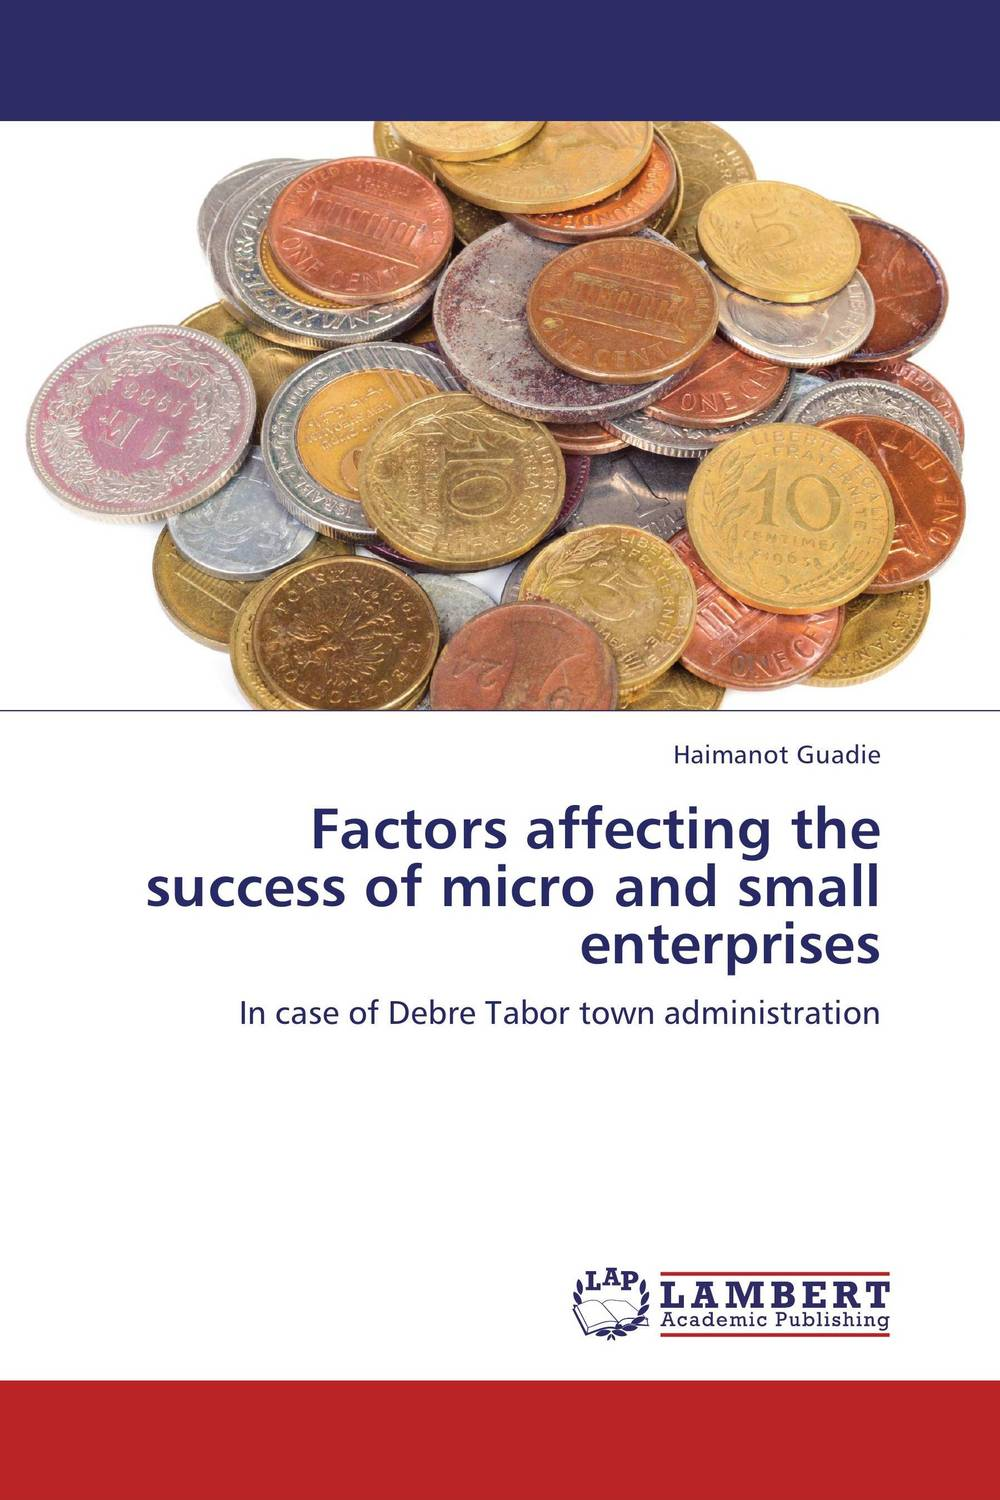 Factors affecting the success of micro and small enterprises small and medium enterprises issues and challenges